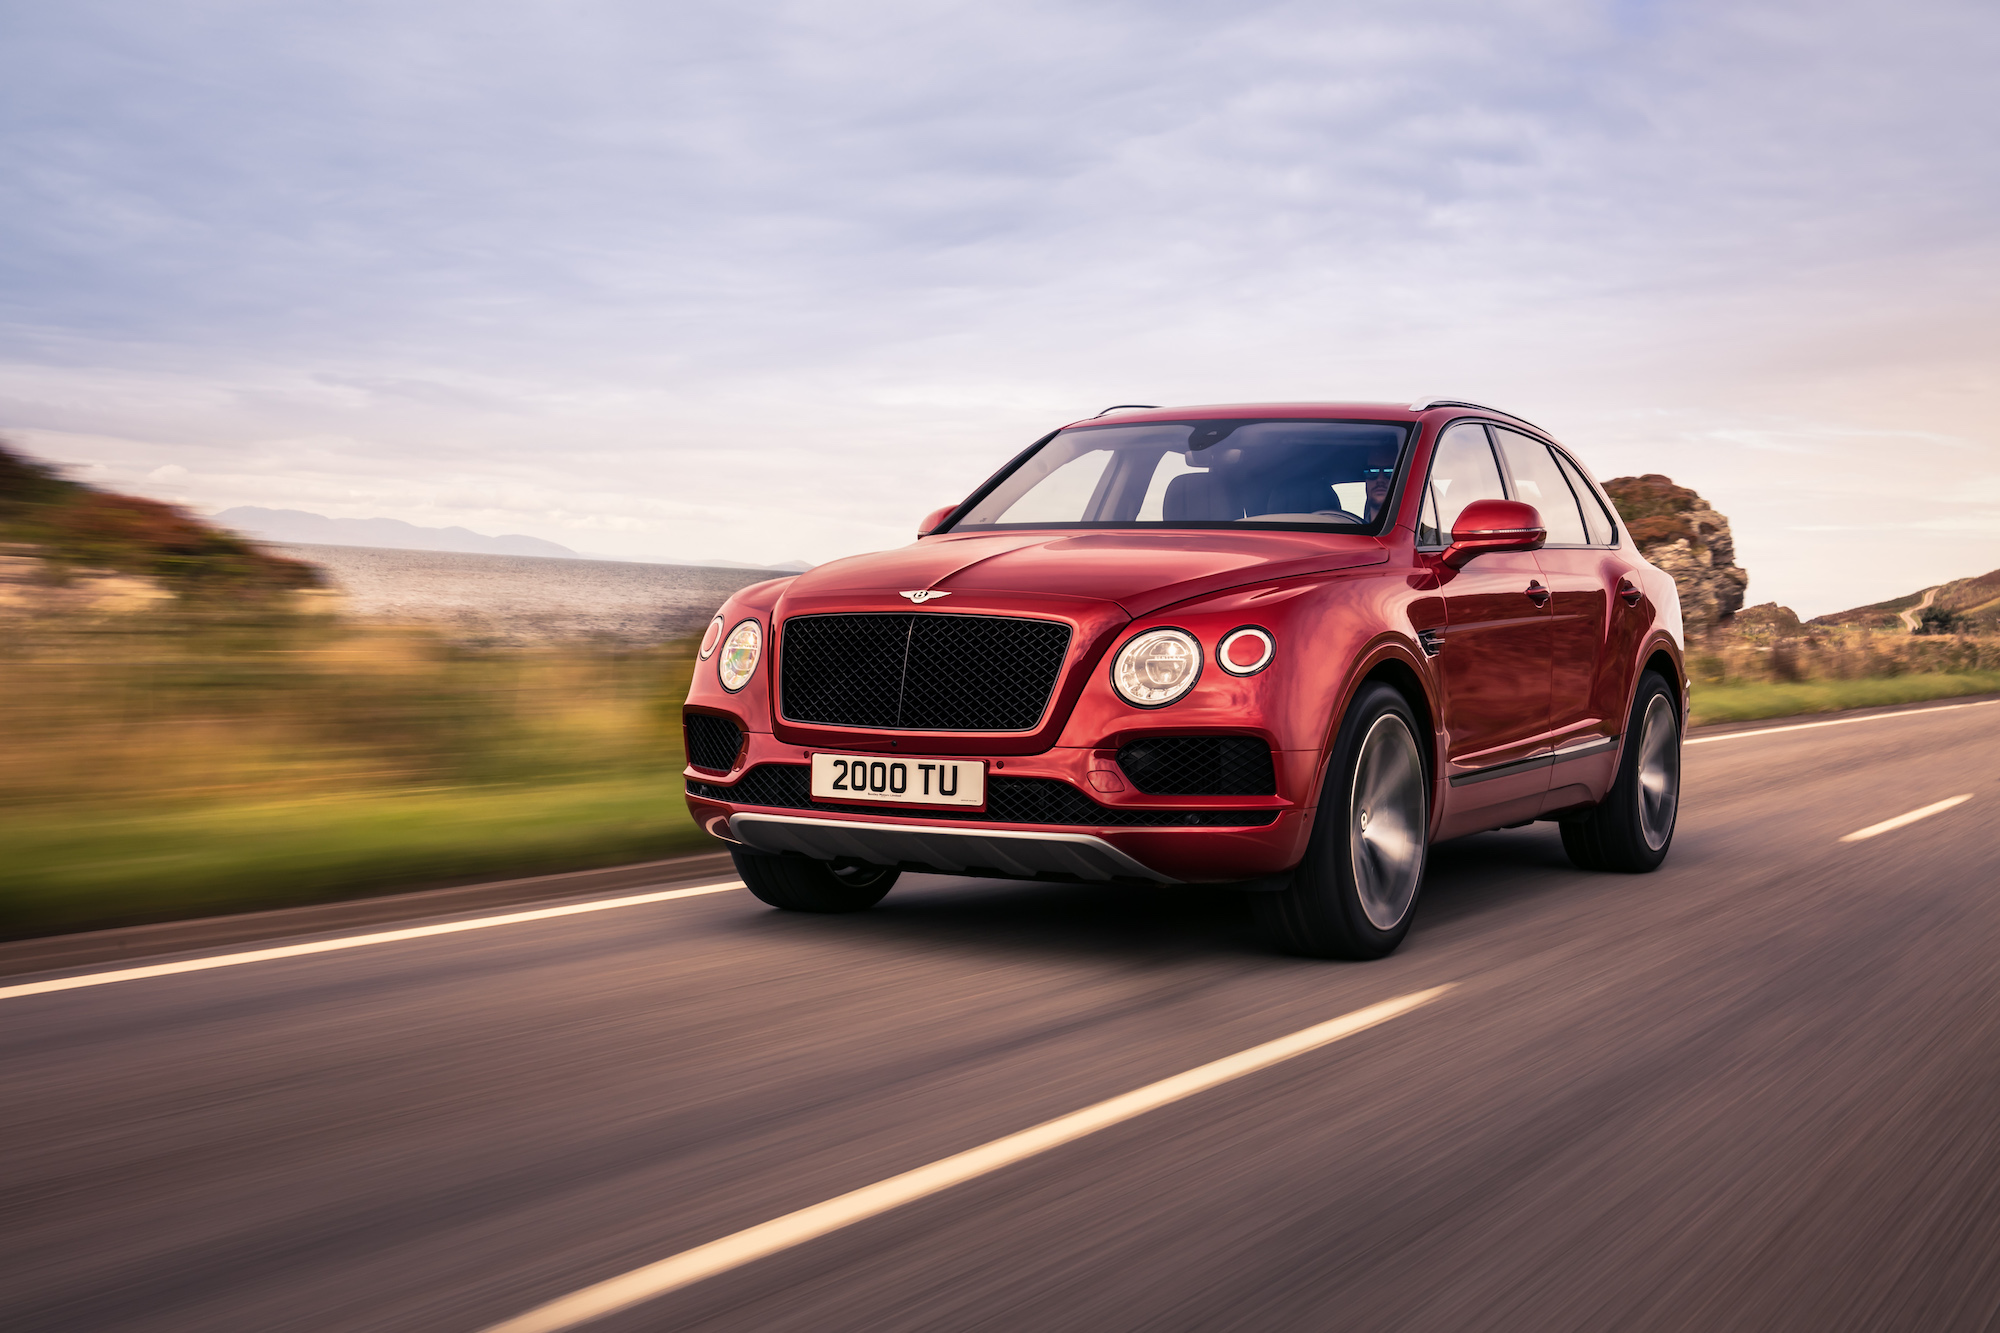 Bentley Bentayga V8 arrives with 542bhp 4.0 litre V8